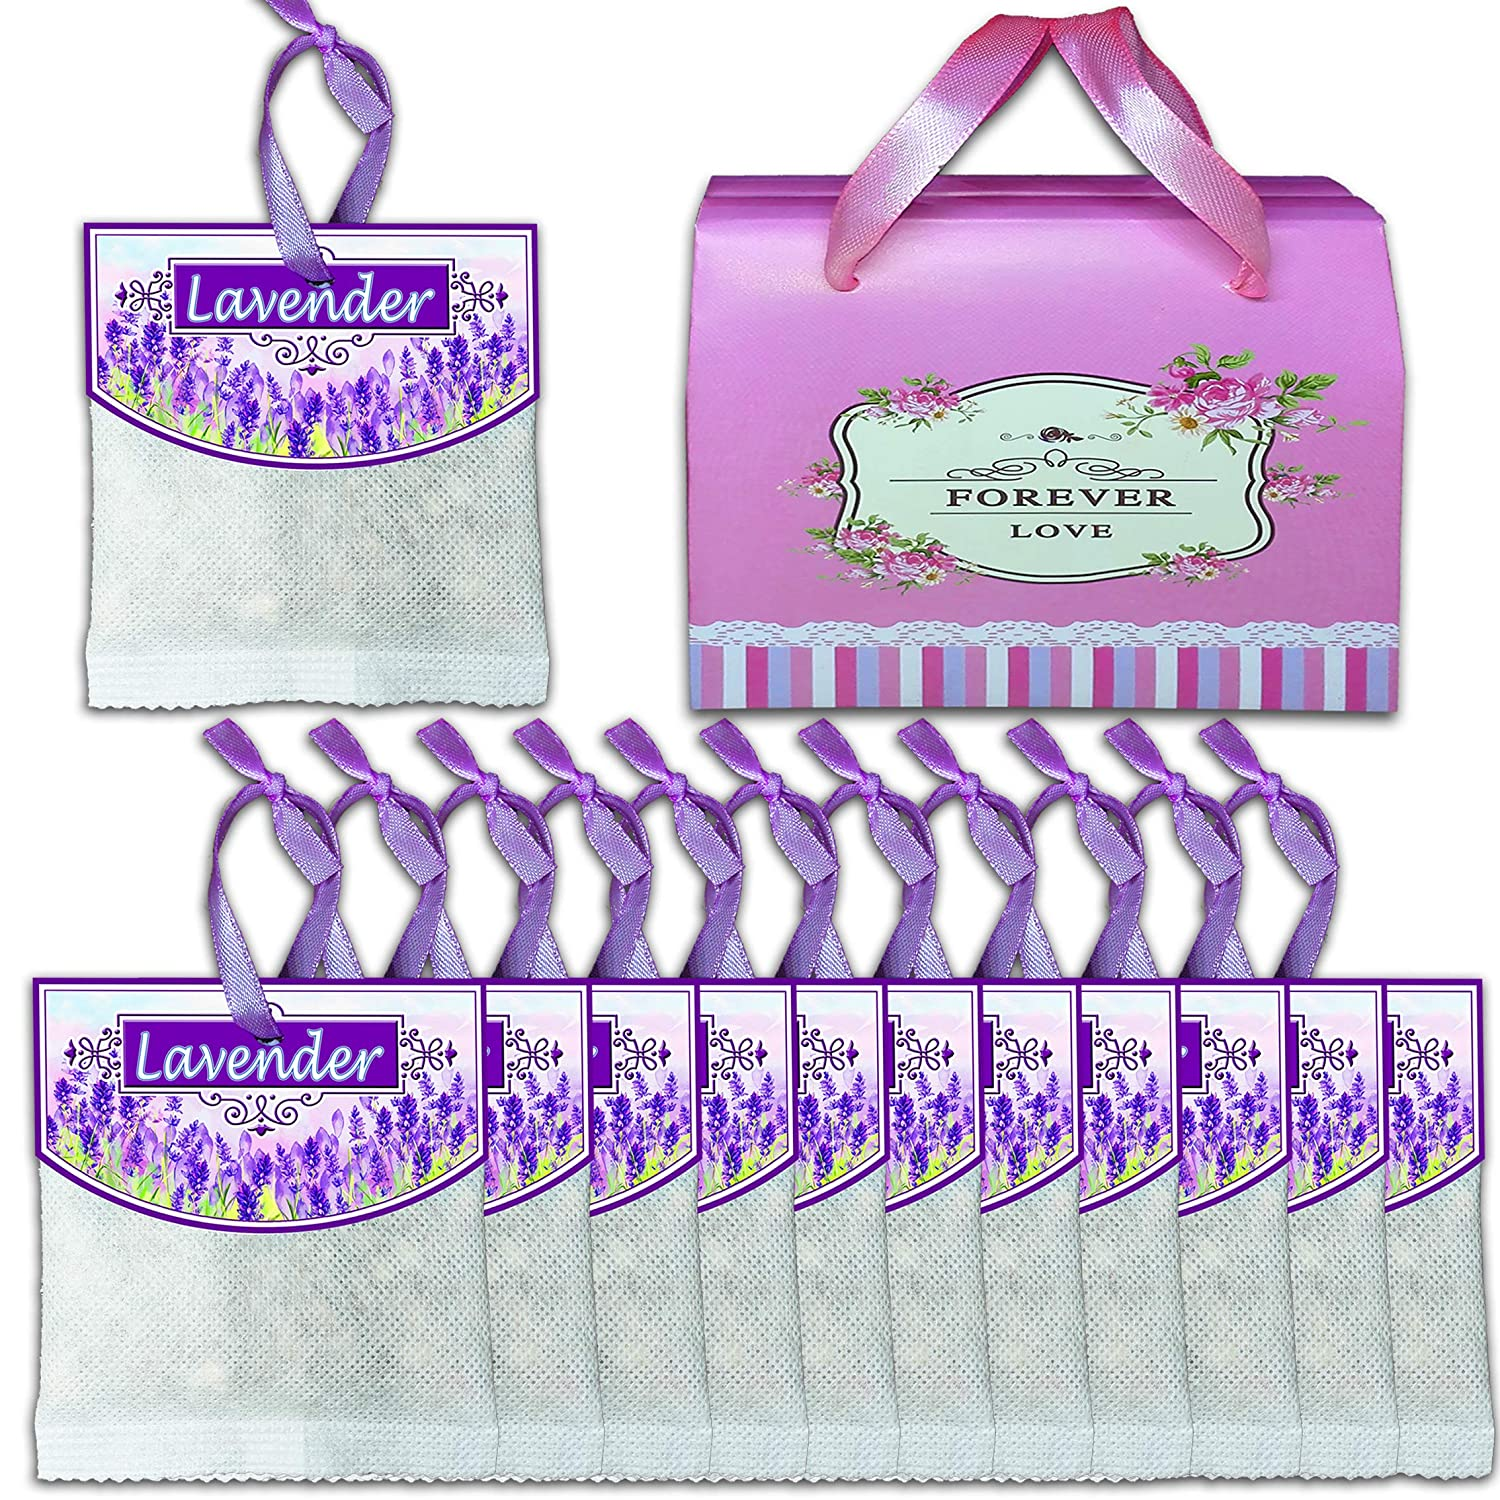 10 Packs (Upgraded Version) Reusable Lavender Scented Sachets for Drawers and Closets and Linens Clothing Closet Storage Etc, Best Gift,Fragrance Sachet,Ship from U.S Warehouse Scent Pleasant